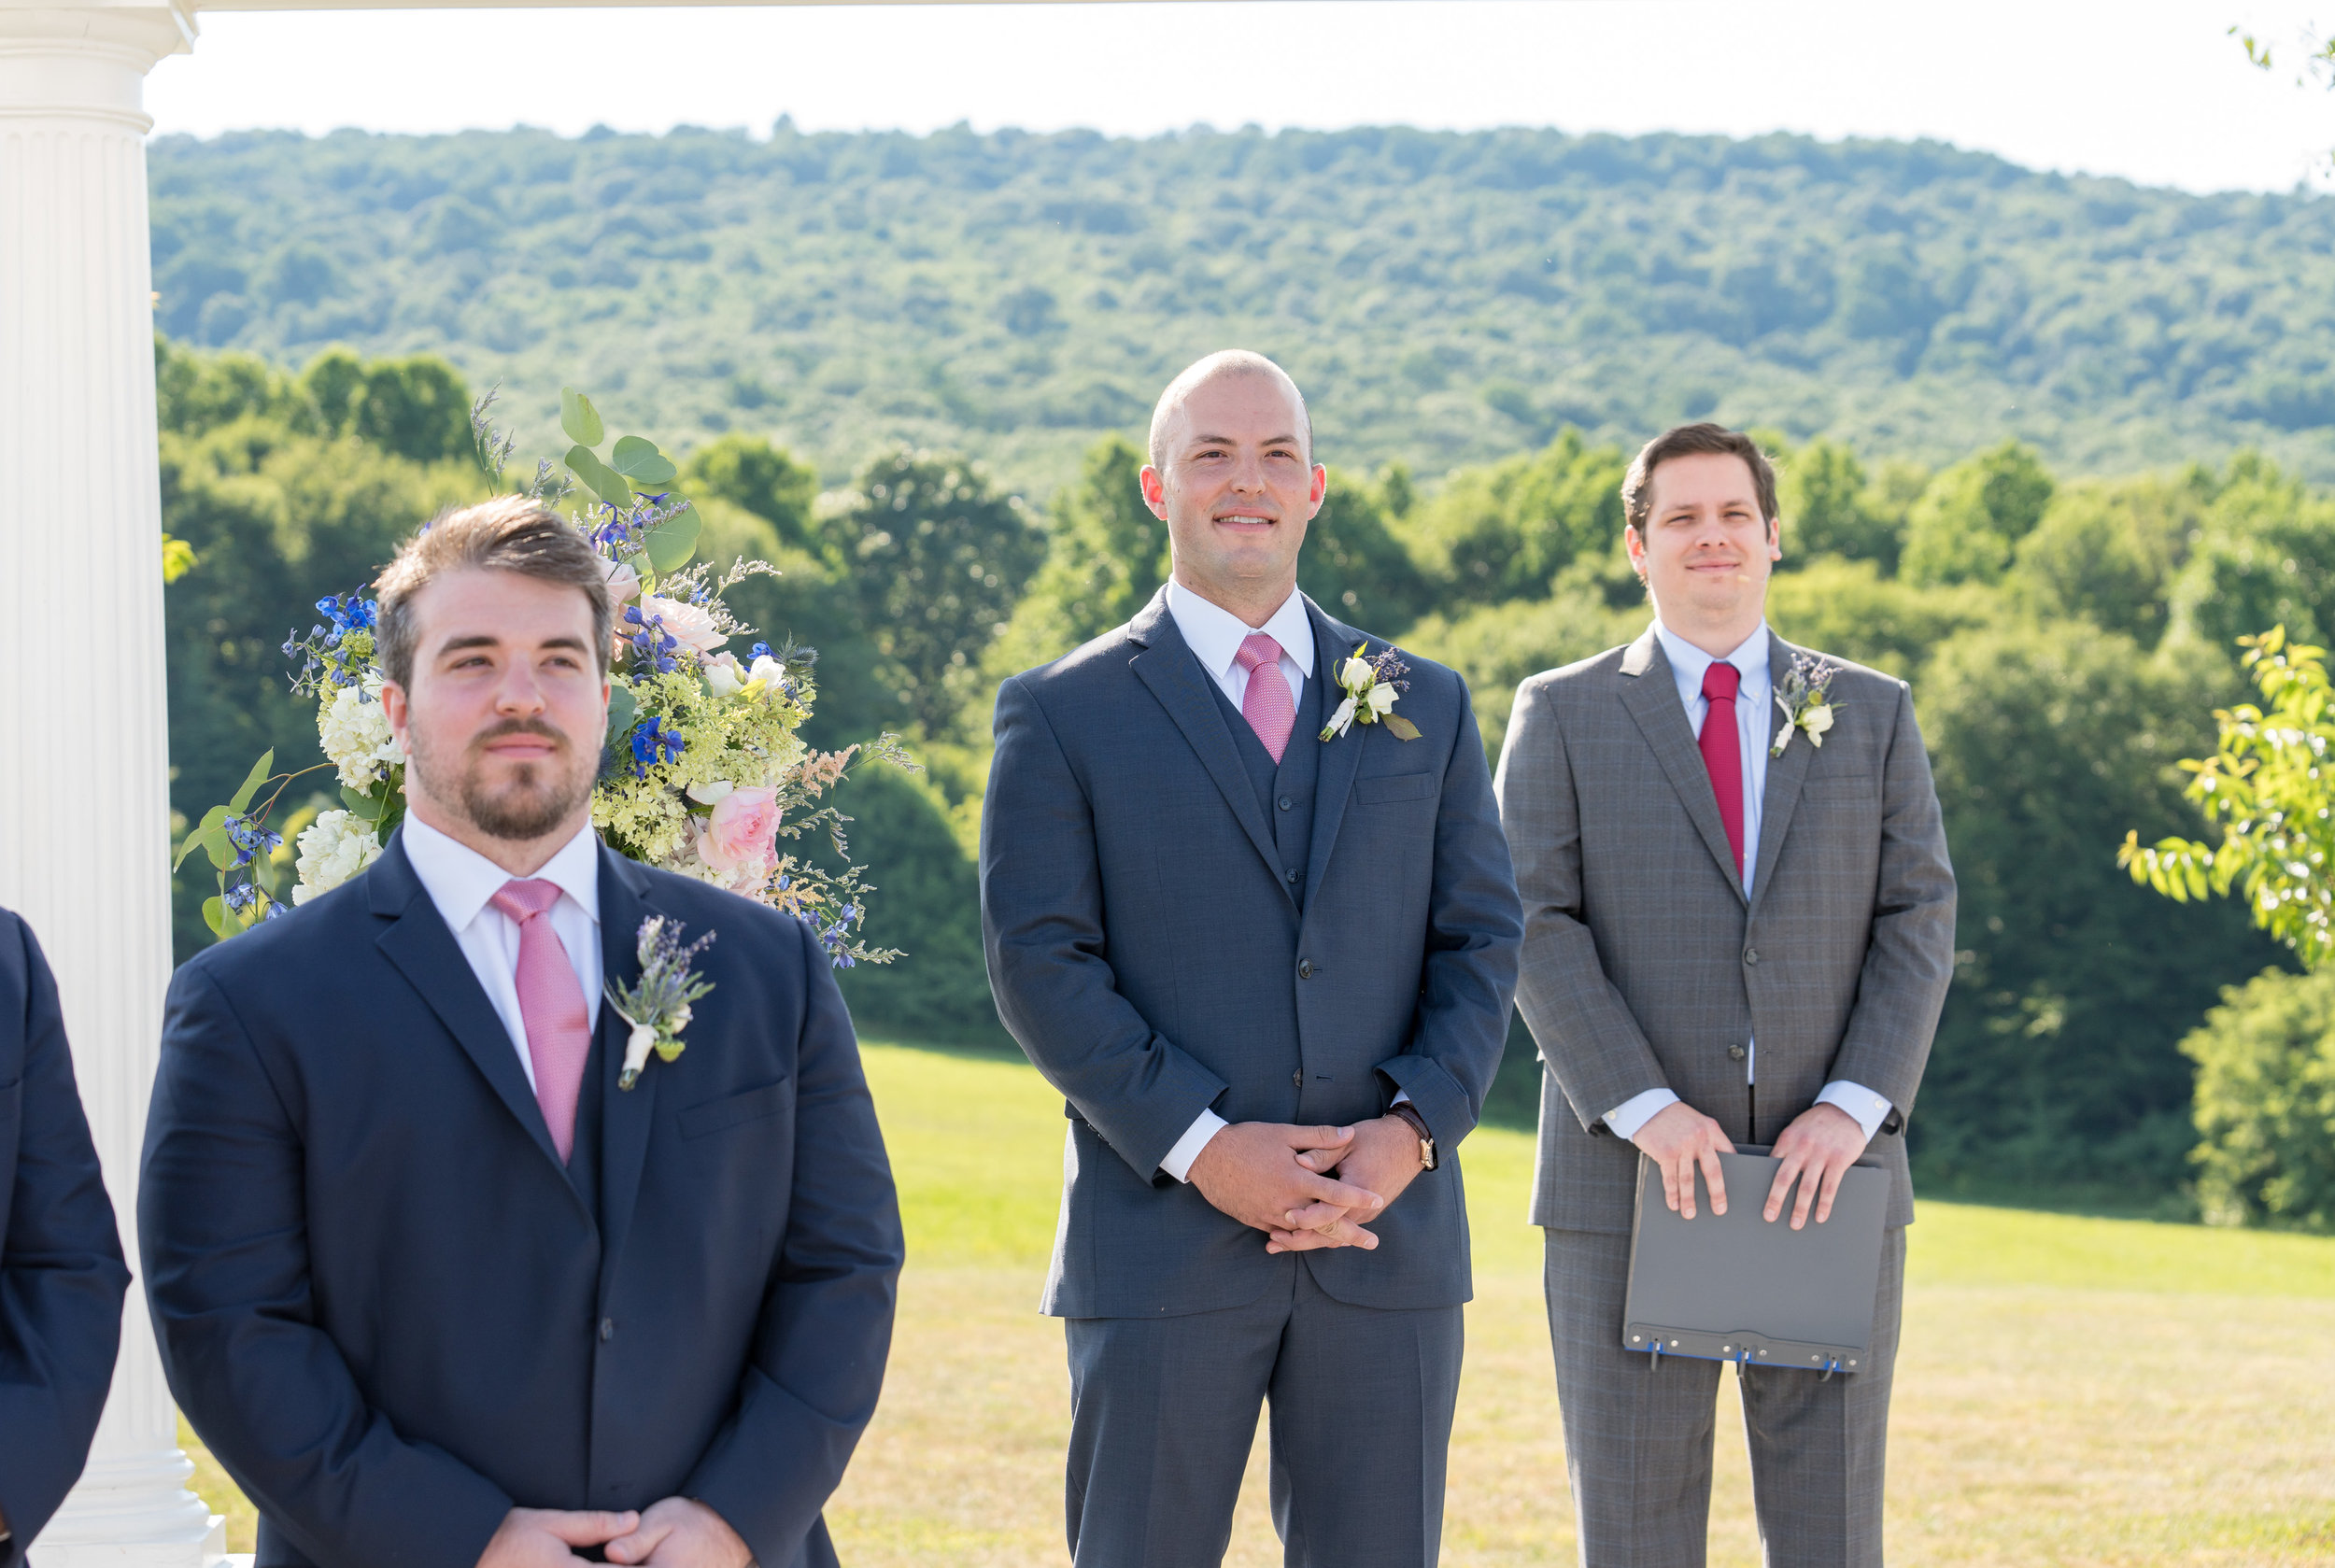 Wedding ceremony photos at Springfield Manor Winery and Distillery